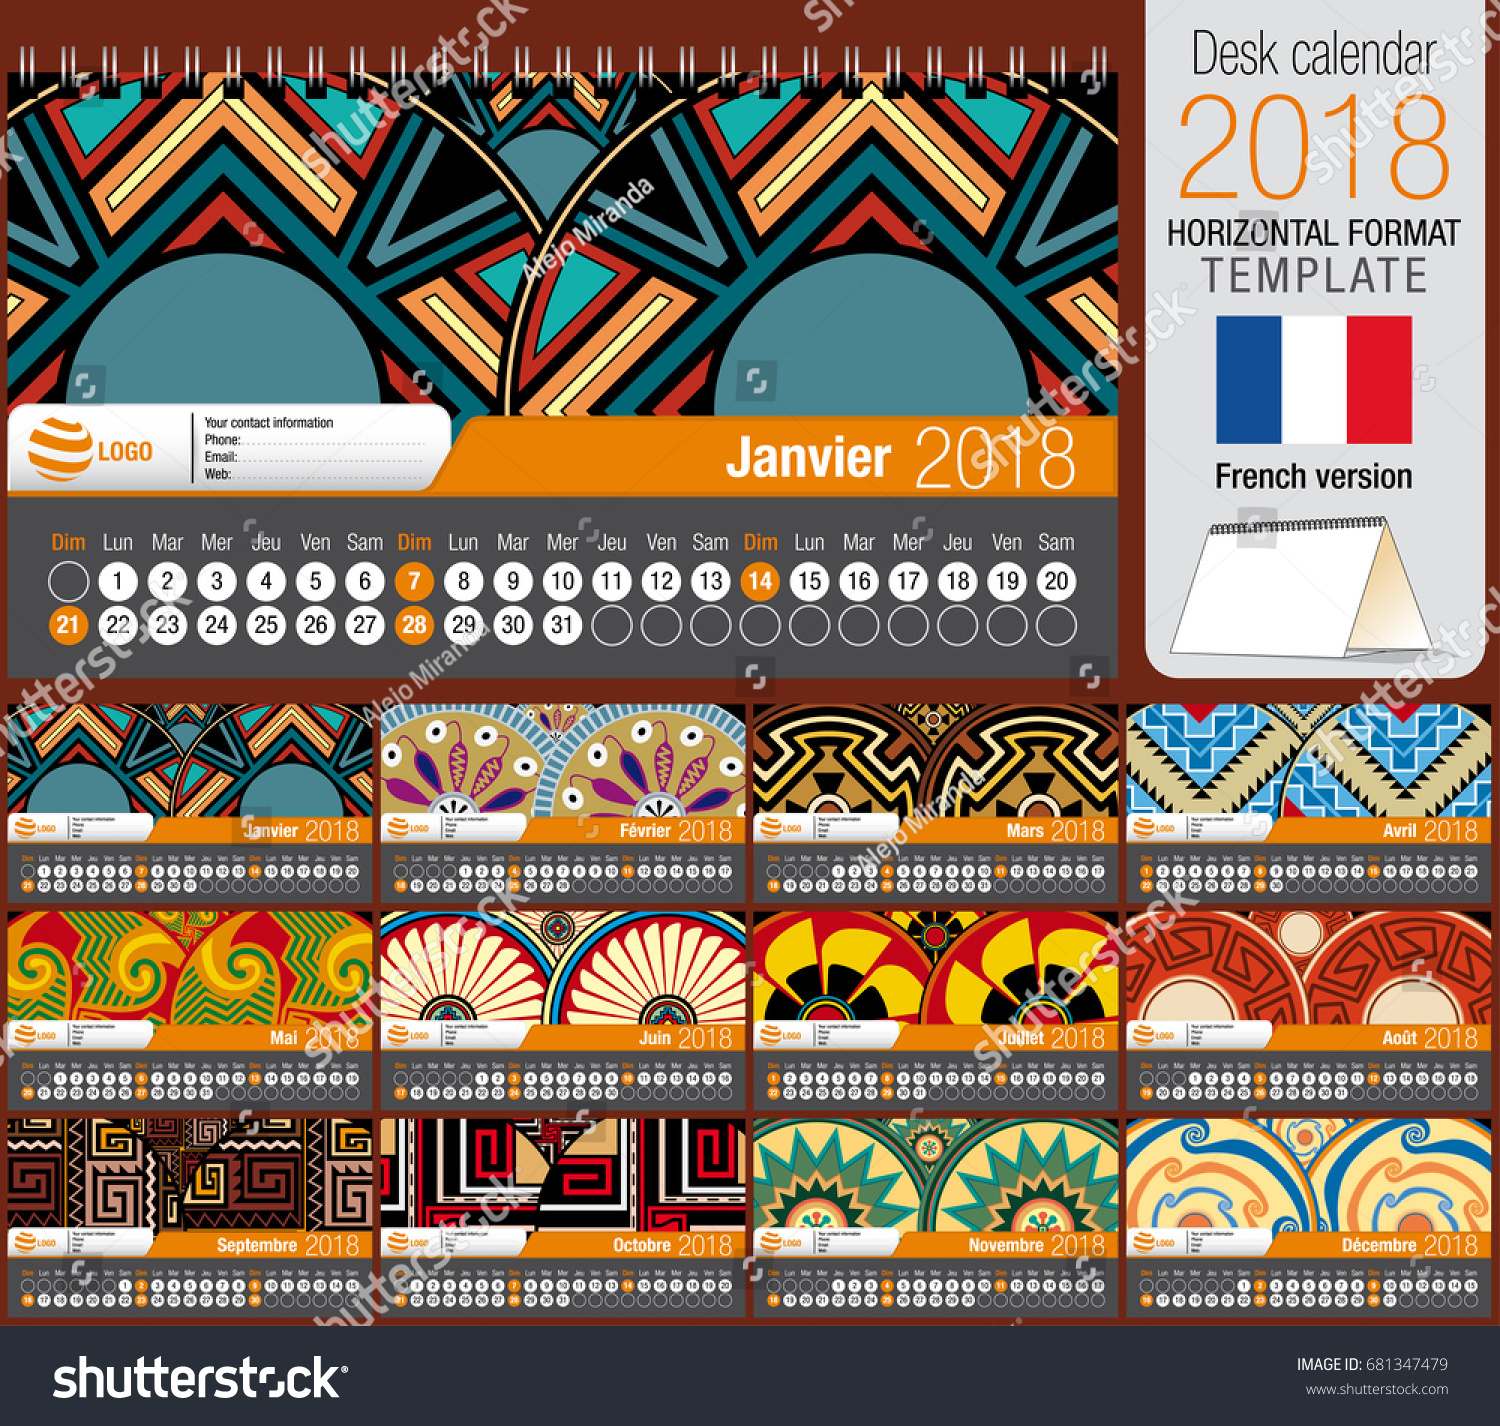 Desk Triangle Calendar 2018 Template Native Stock Vector Royalty